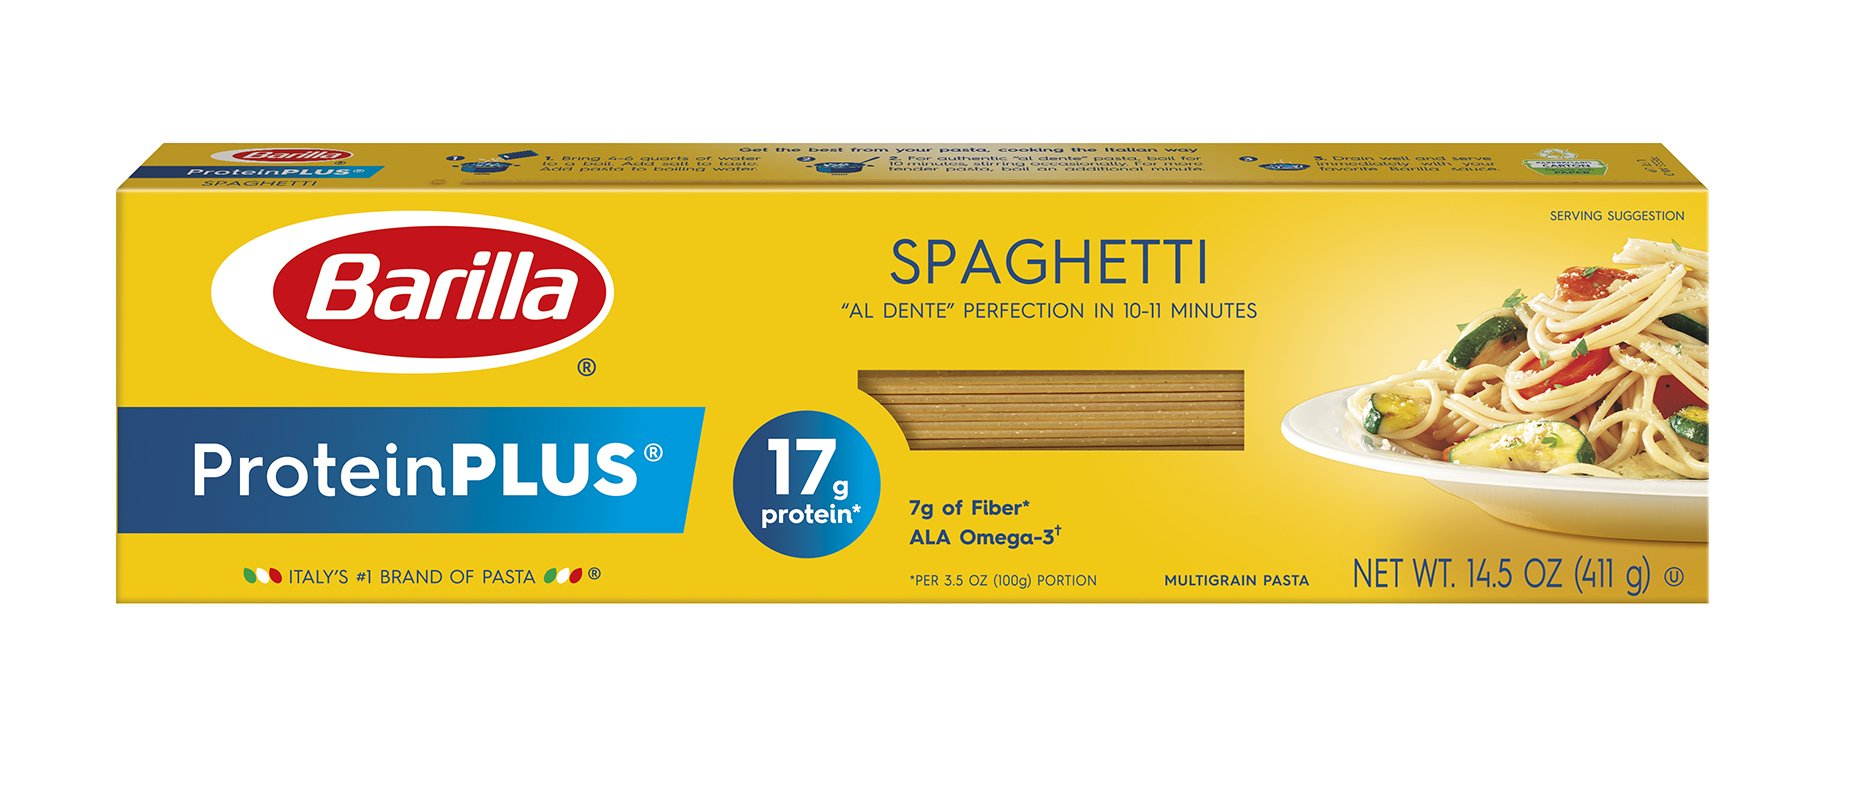 Barilla ProteinPLUS Spaghetti Pasta, High Protein Pasta, 14.5 Ounce (Pack of 12)